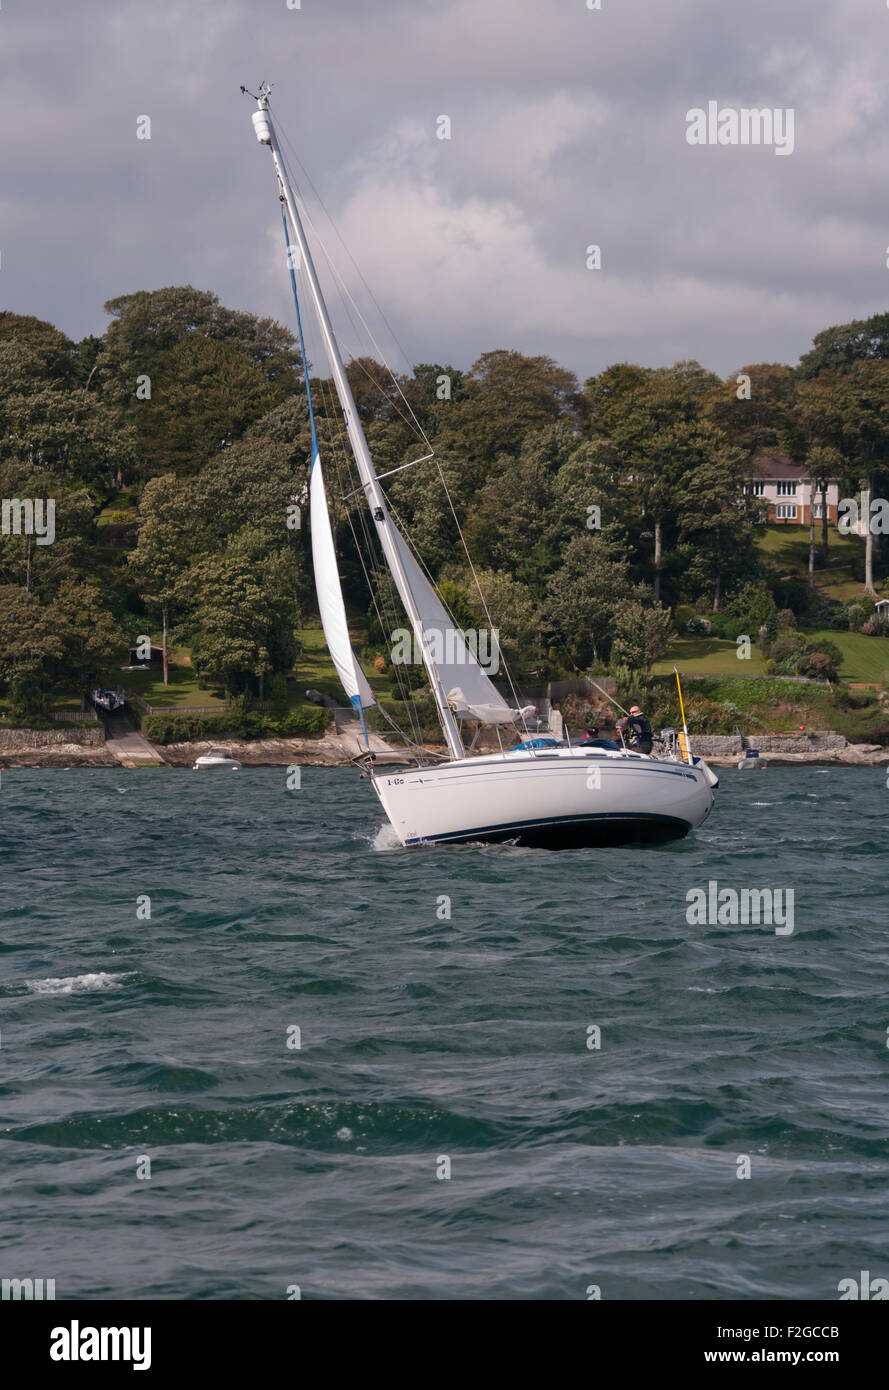 Sailing Yacht Under Sail leaning In The Wind On THe River Fal Cornwall England UK Stock Photo